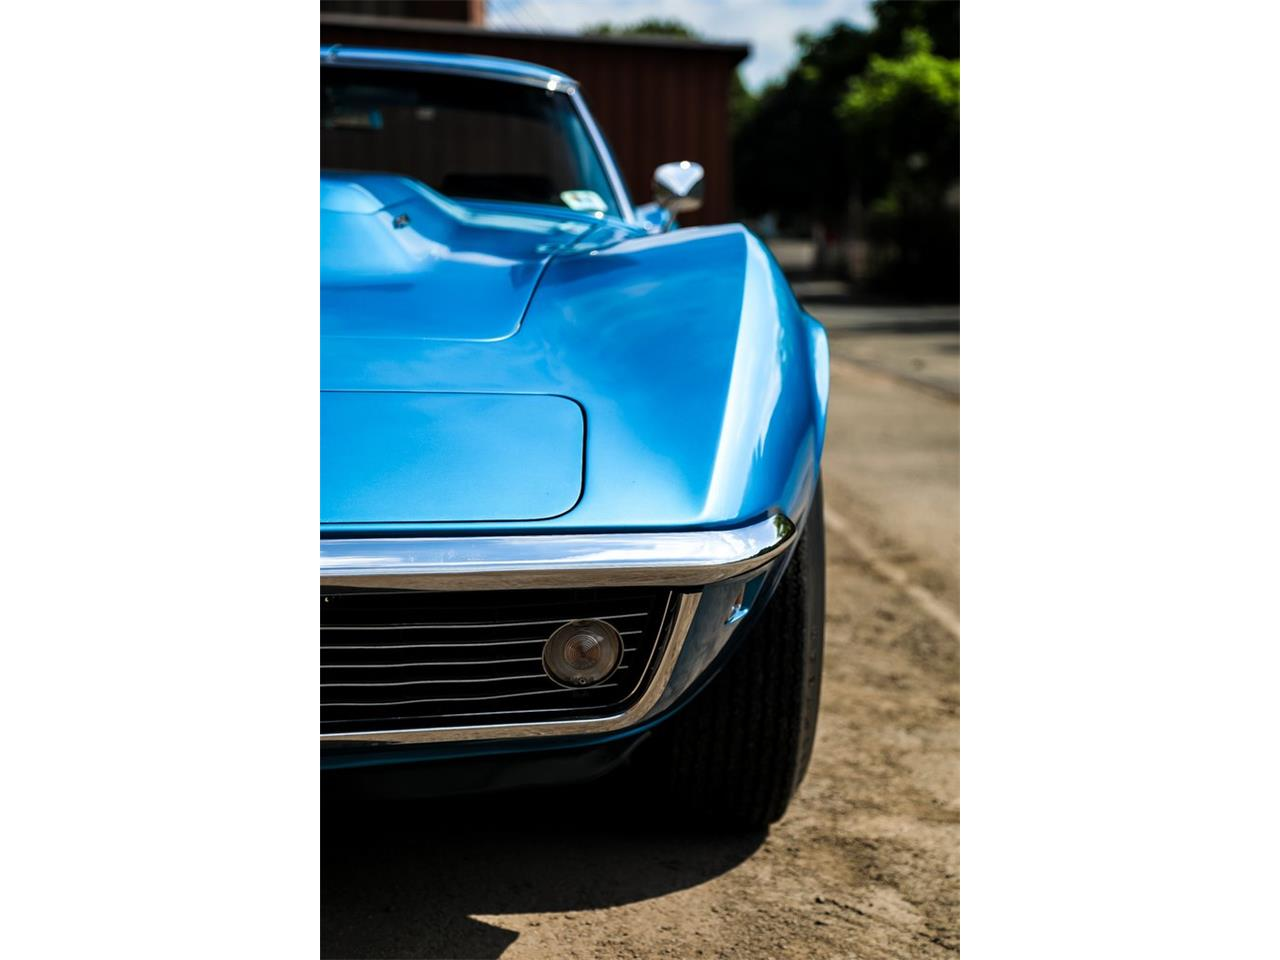 1969 Chevrolet Corvette for sale in Wallingford, CT – photo 81